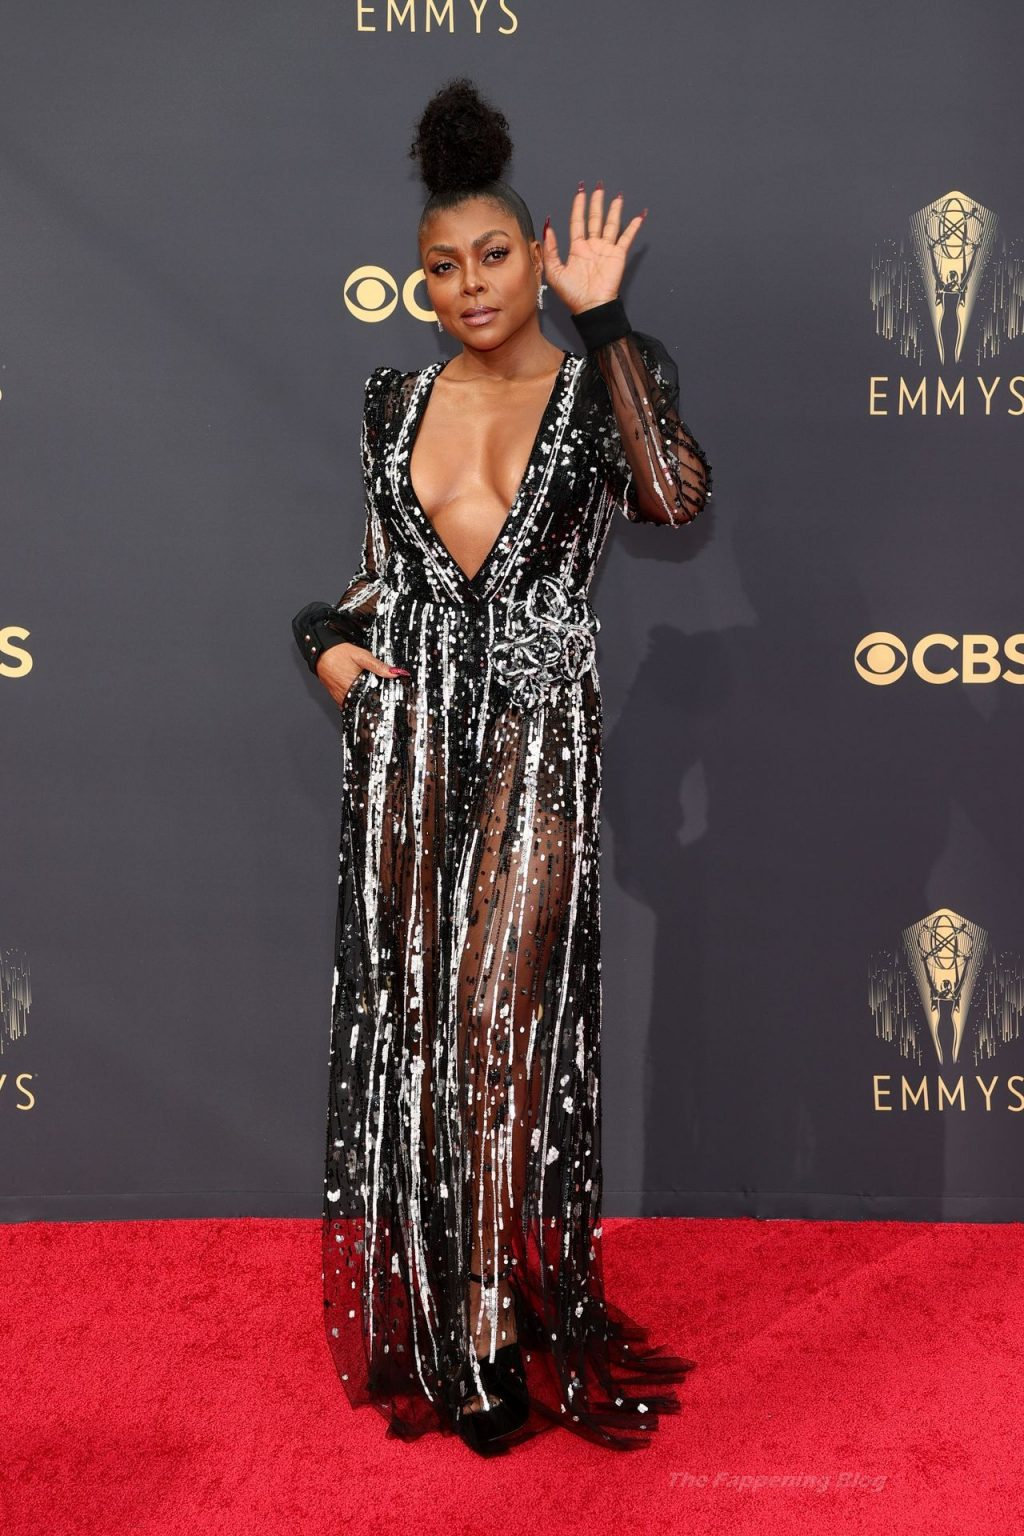 Taraji P. Henson Shows Off Her Cleavage at the 73rd Primetime Emmy Awards in Los Angeles (22 Photos)